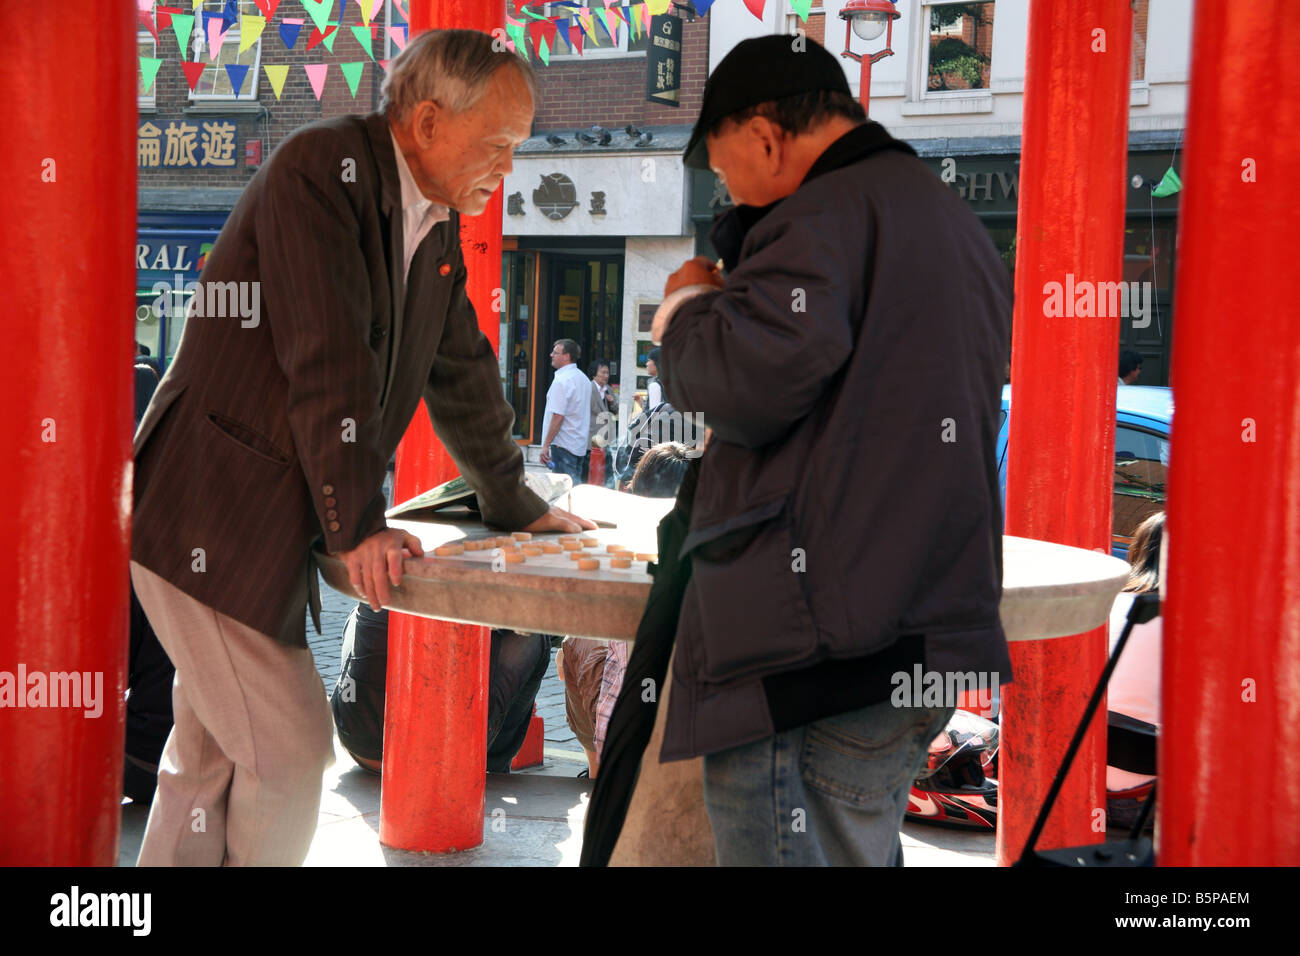 Chinese men play game of draughts in London's Chinatown - Stock Image